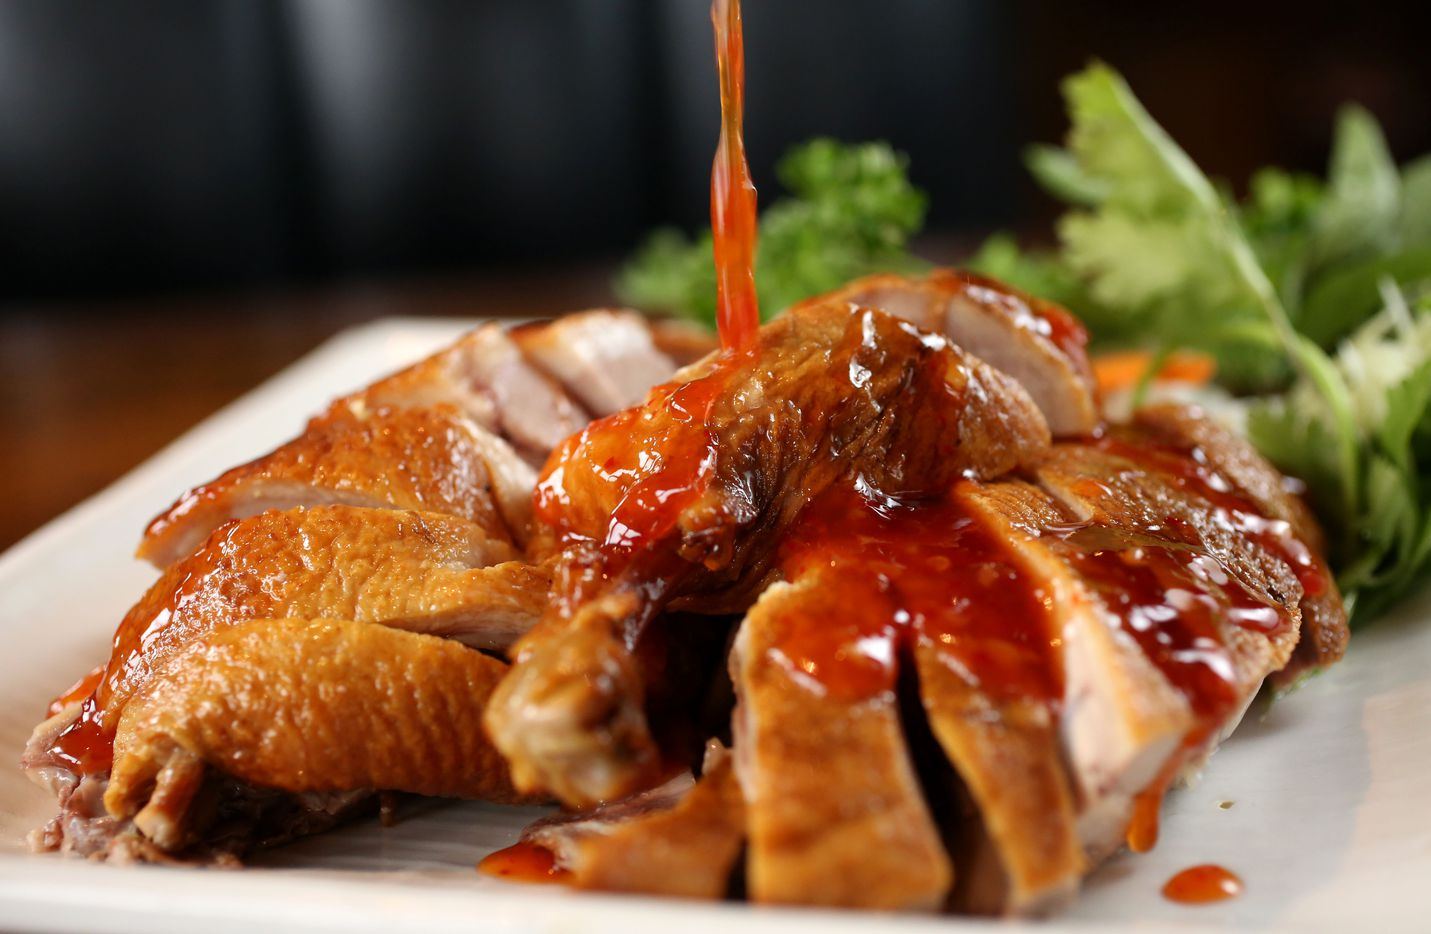 """Taiwanese smoked duck at Yama Izakaya and Sushi Legacy, a Japanese restaurant that features an entire Taiwanese menu prepared by a Taiwanese chef, Hsiu Fu """"Allen"""" Hsu.  (Rose Baca/Staff Photographer)"""